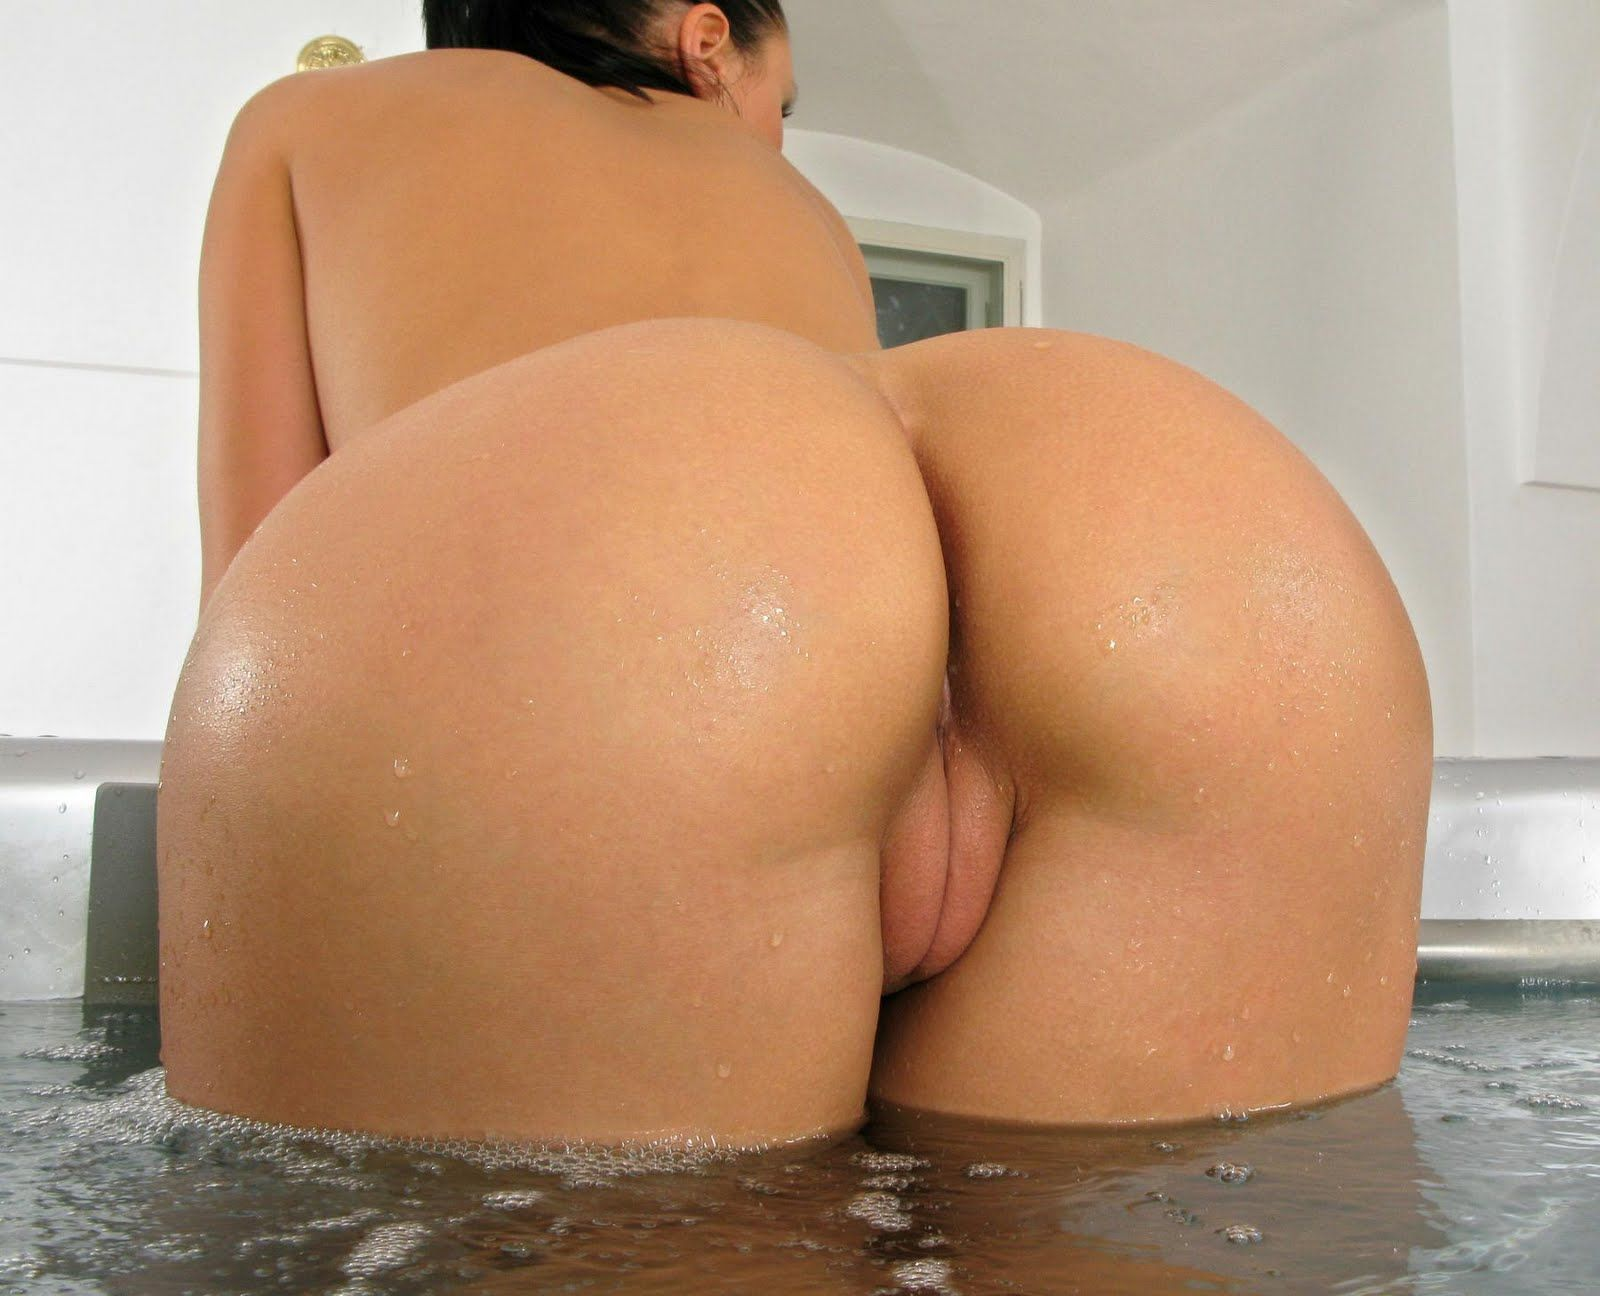 Huge Ass Milf Latina Shows Off In Doggy